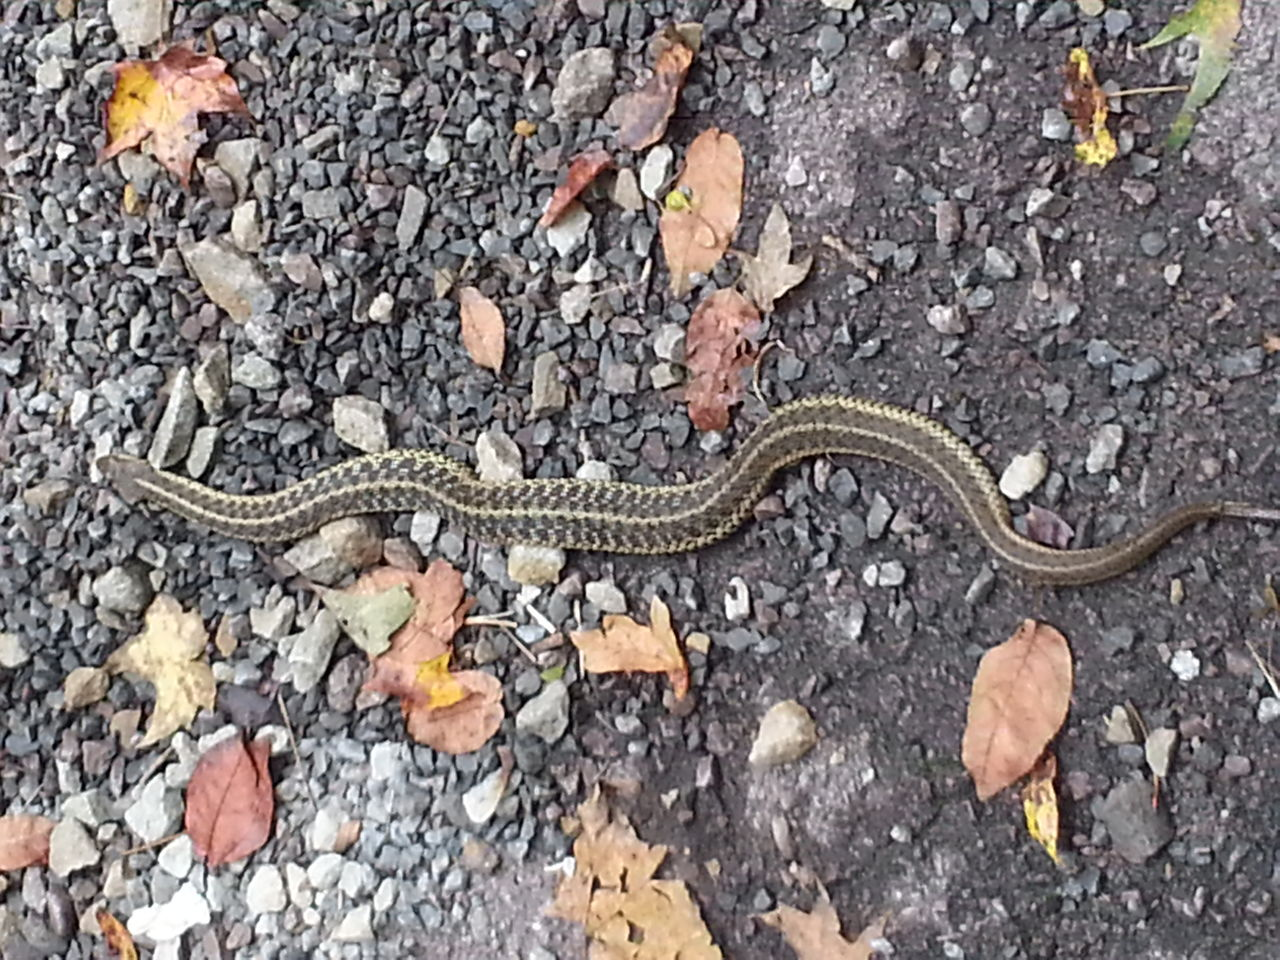 How To Identify A Baby Rattlesnake